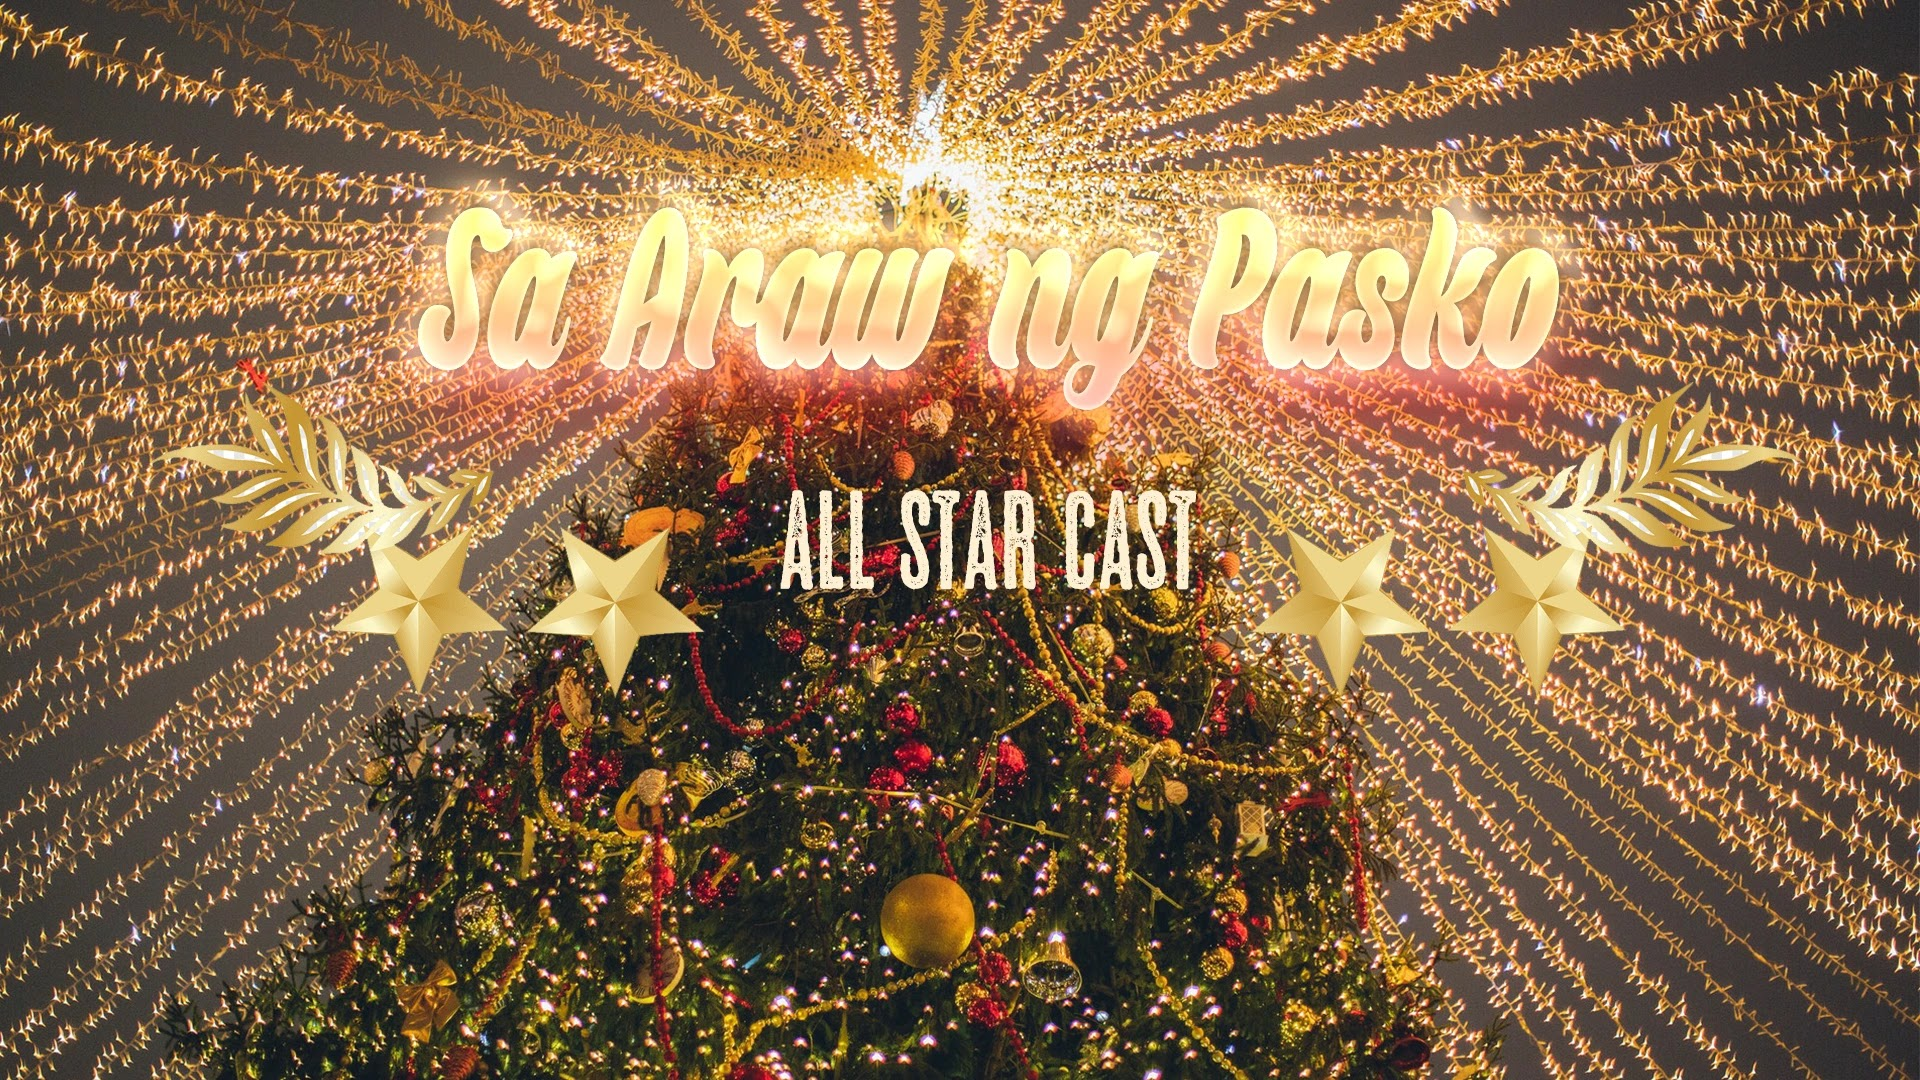 Sa Araw Ng Pasko - All Star Cast